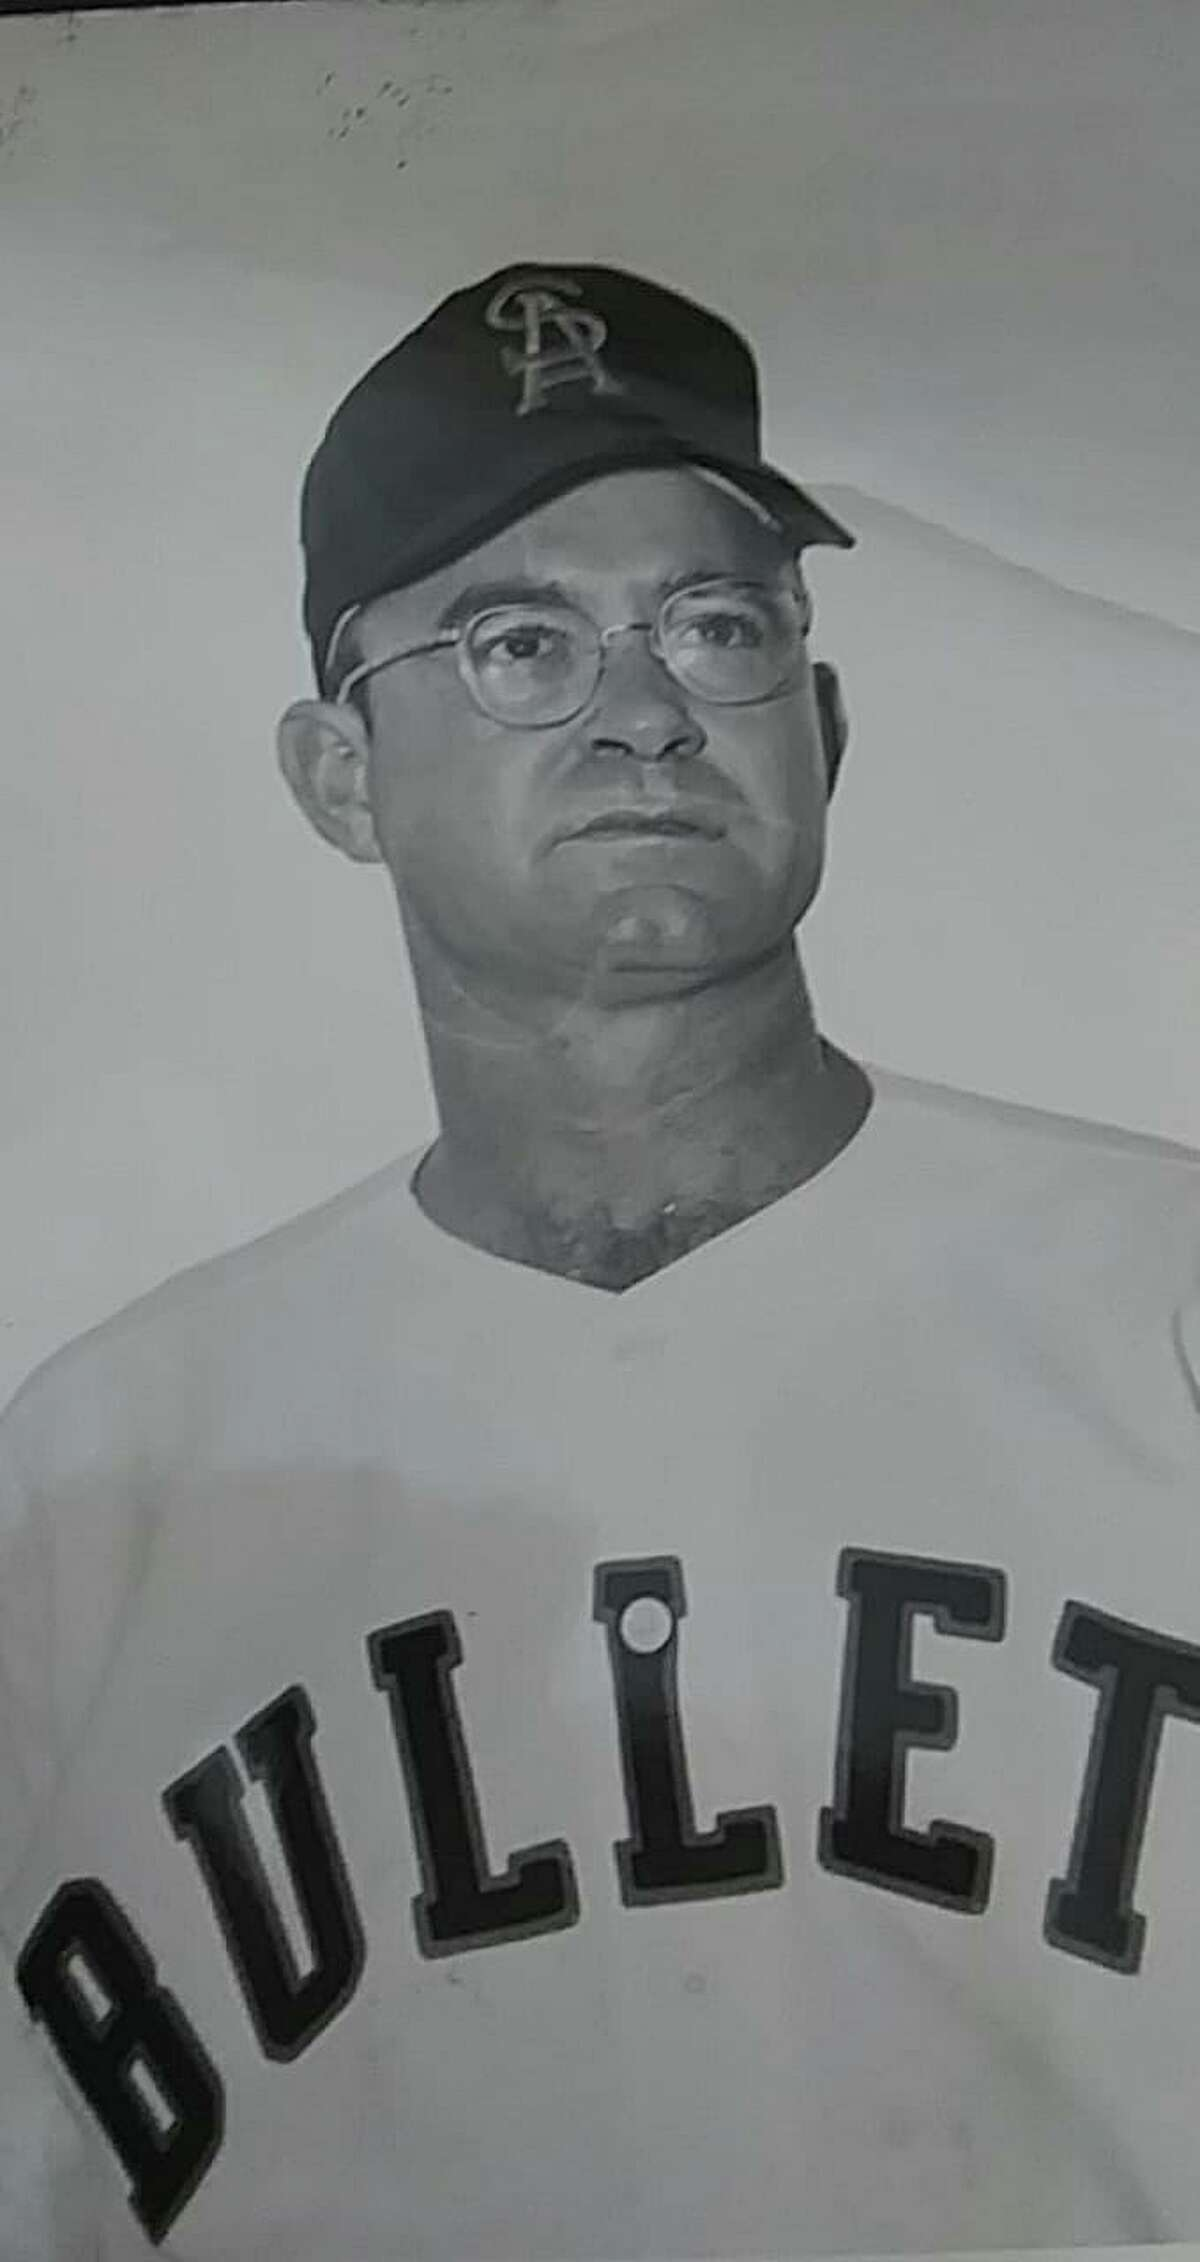 Clint Courtney, a one-time Major League baseball player, was a player-coach and occasional backup catcher for the short-lived San Antonio Bullets minor league team. It was affiliated with the Houston Colt .45s, which later became the Houston Astros. The Bullets existed for only two years, 1963 and 1964.